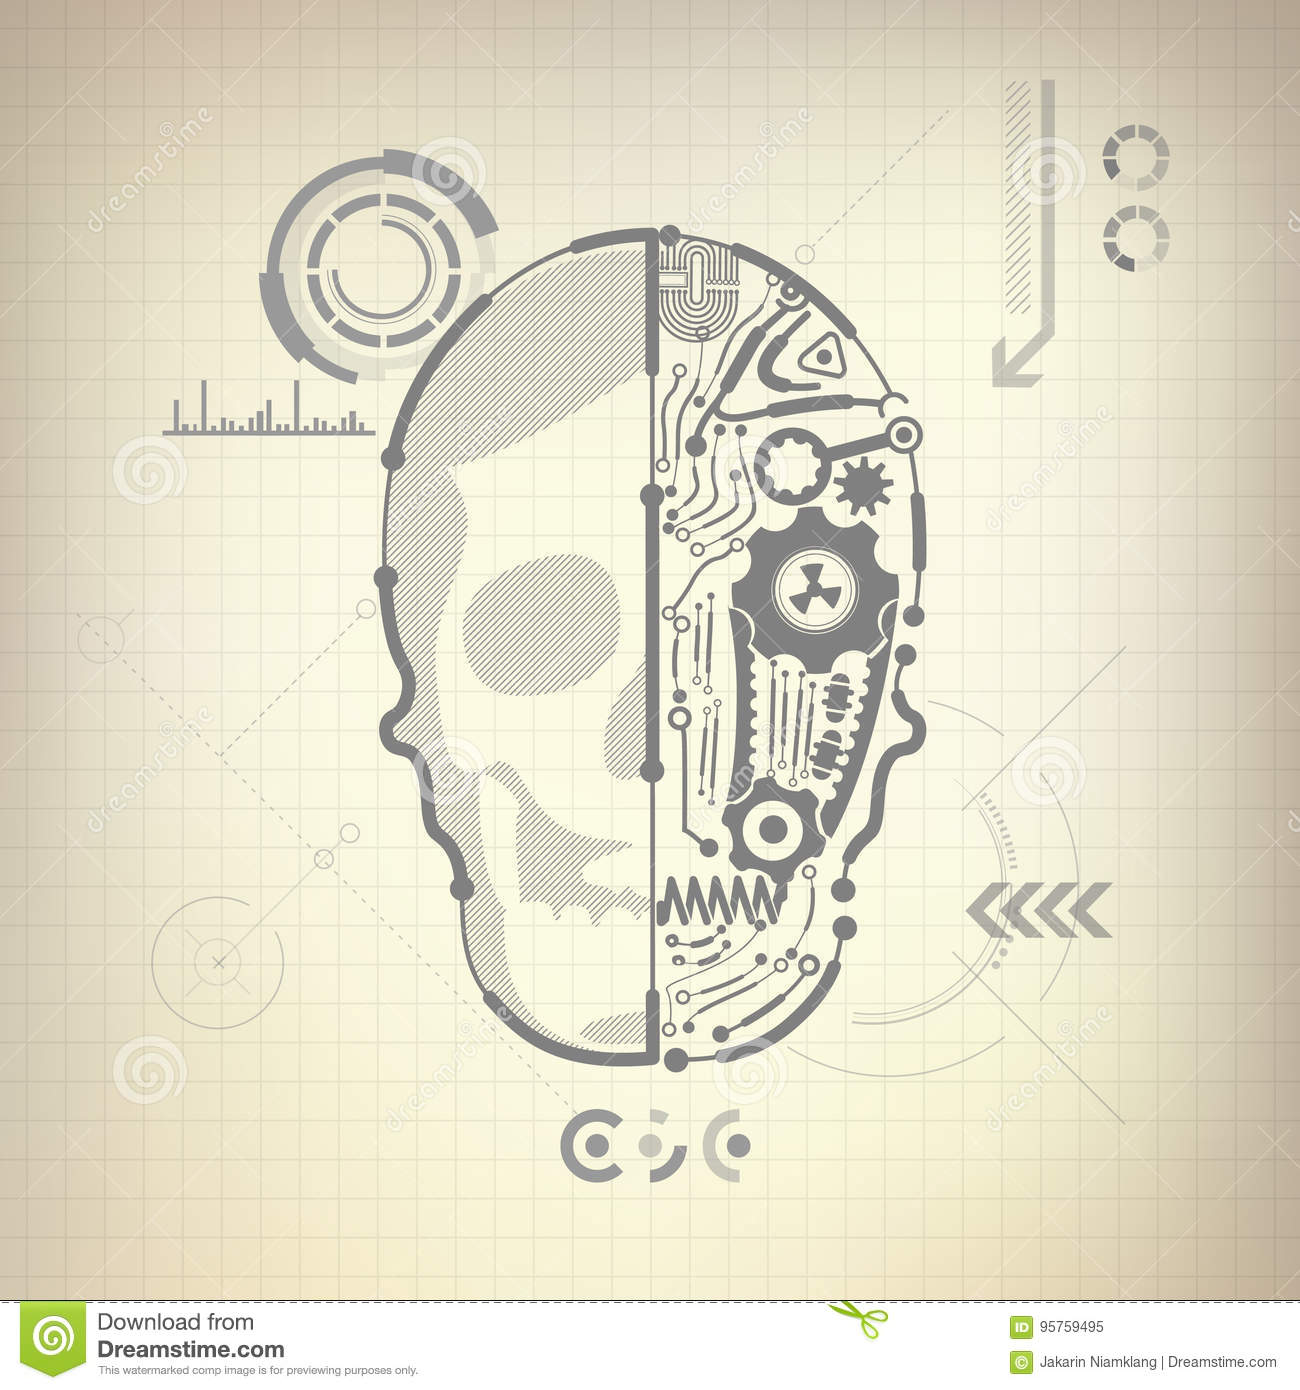 Cyborg Diagram Invention Nice Place To Get Wiring Ozonegeneratorcircuitdiagram World Stock Vector Illustration Of Human Head 95759495 Rh Dreamstime Com Cotton Inventor